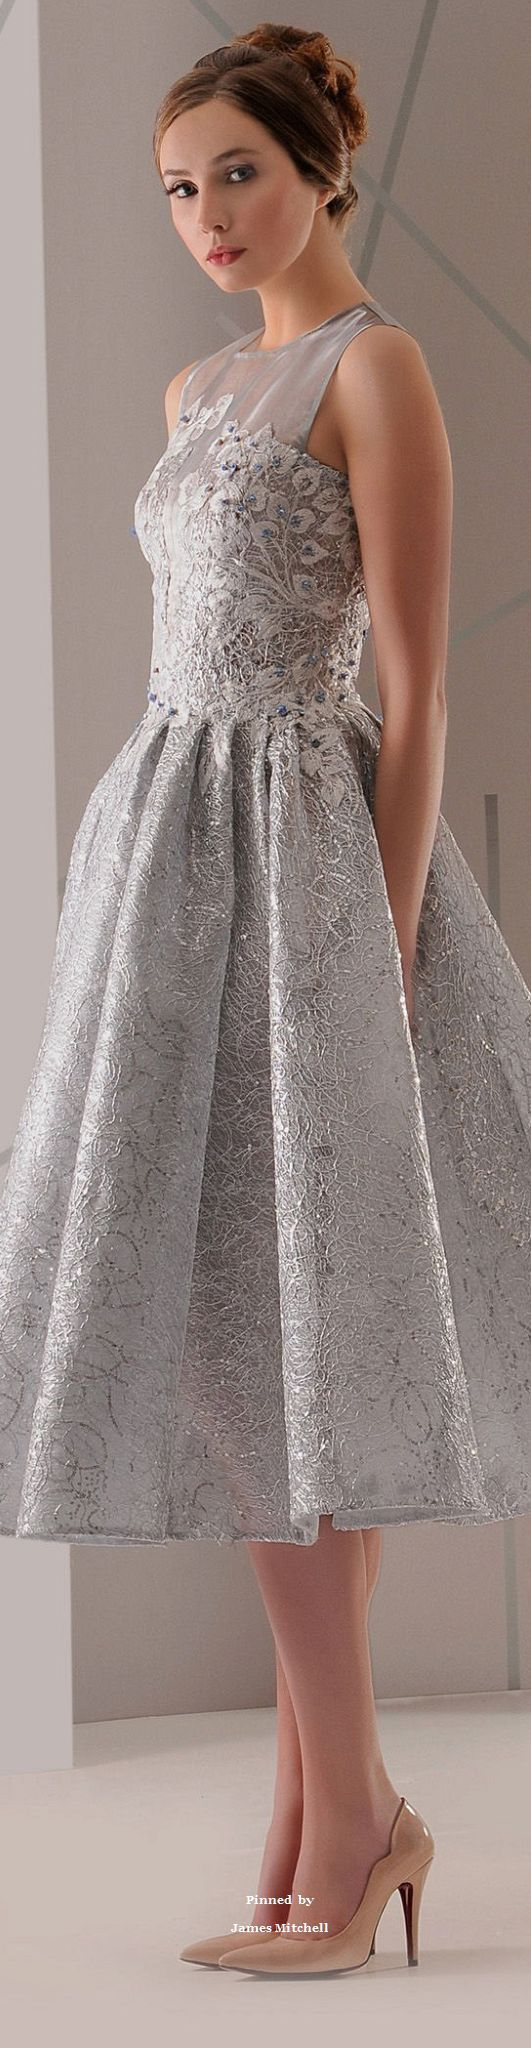 Antonios Couture Spring-summer 2016